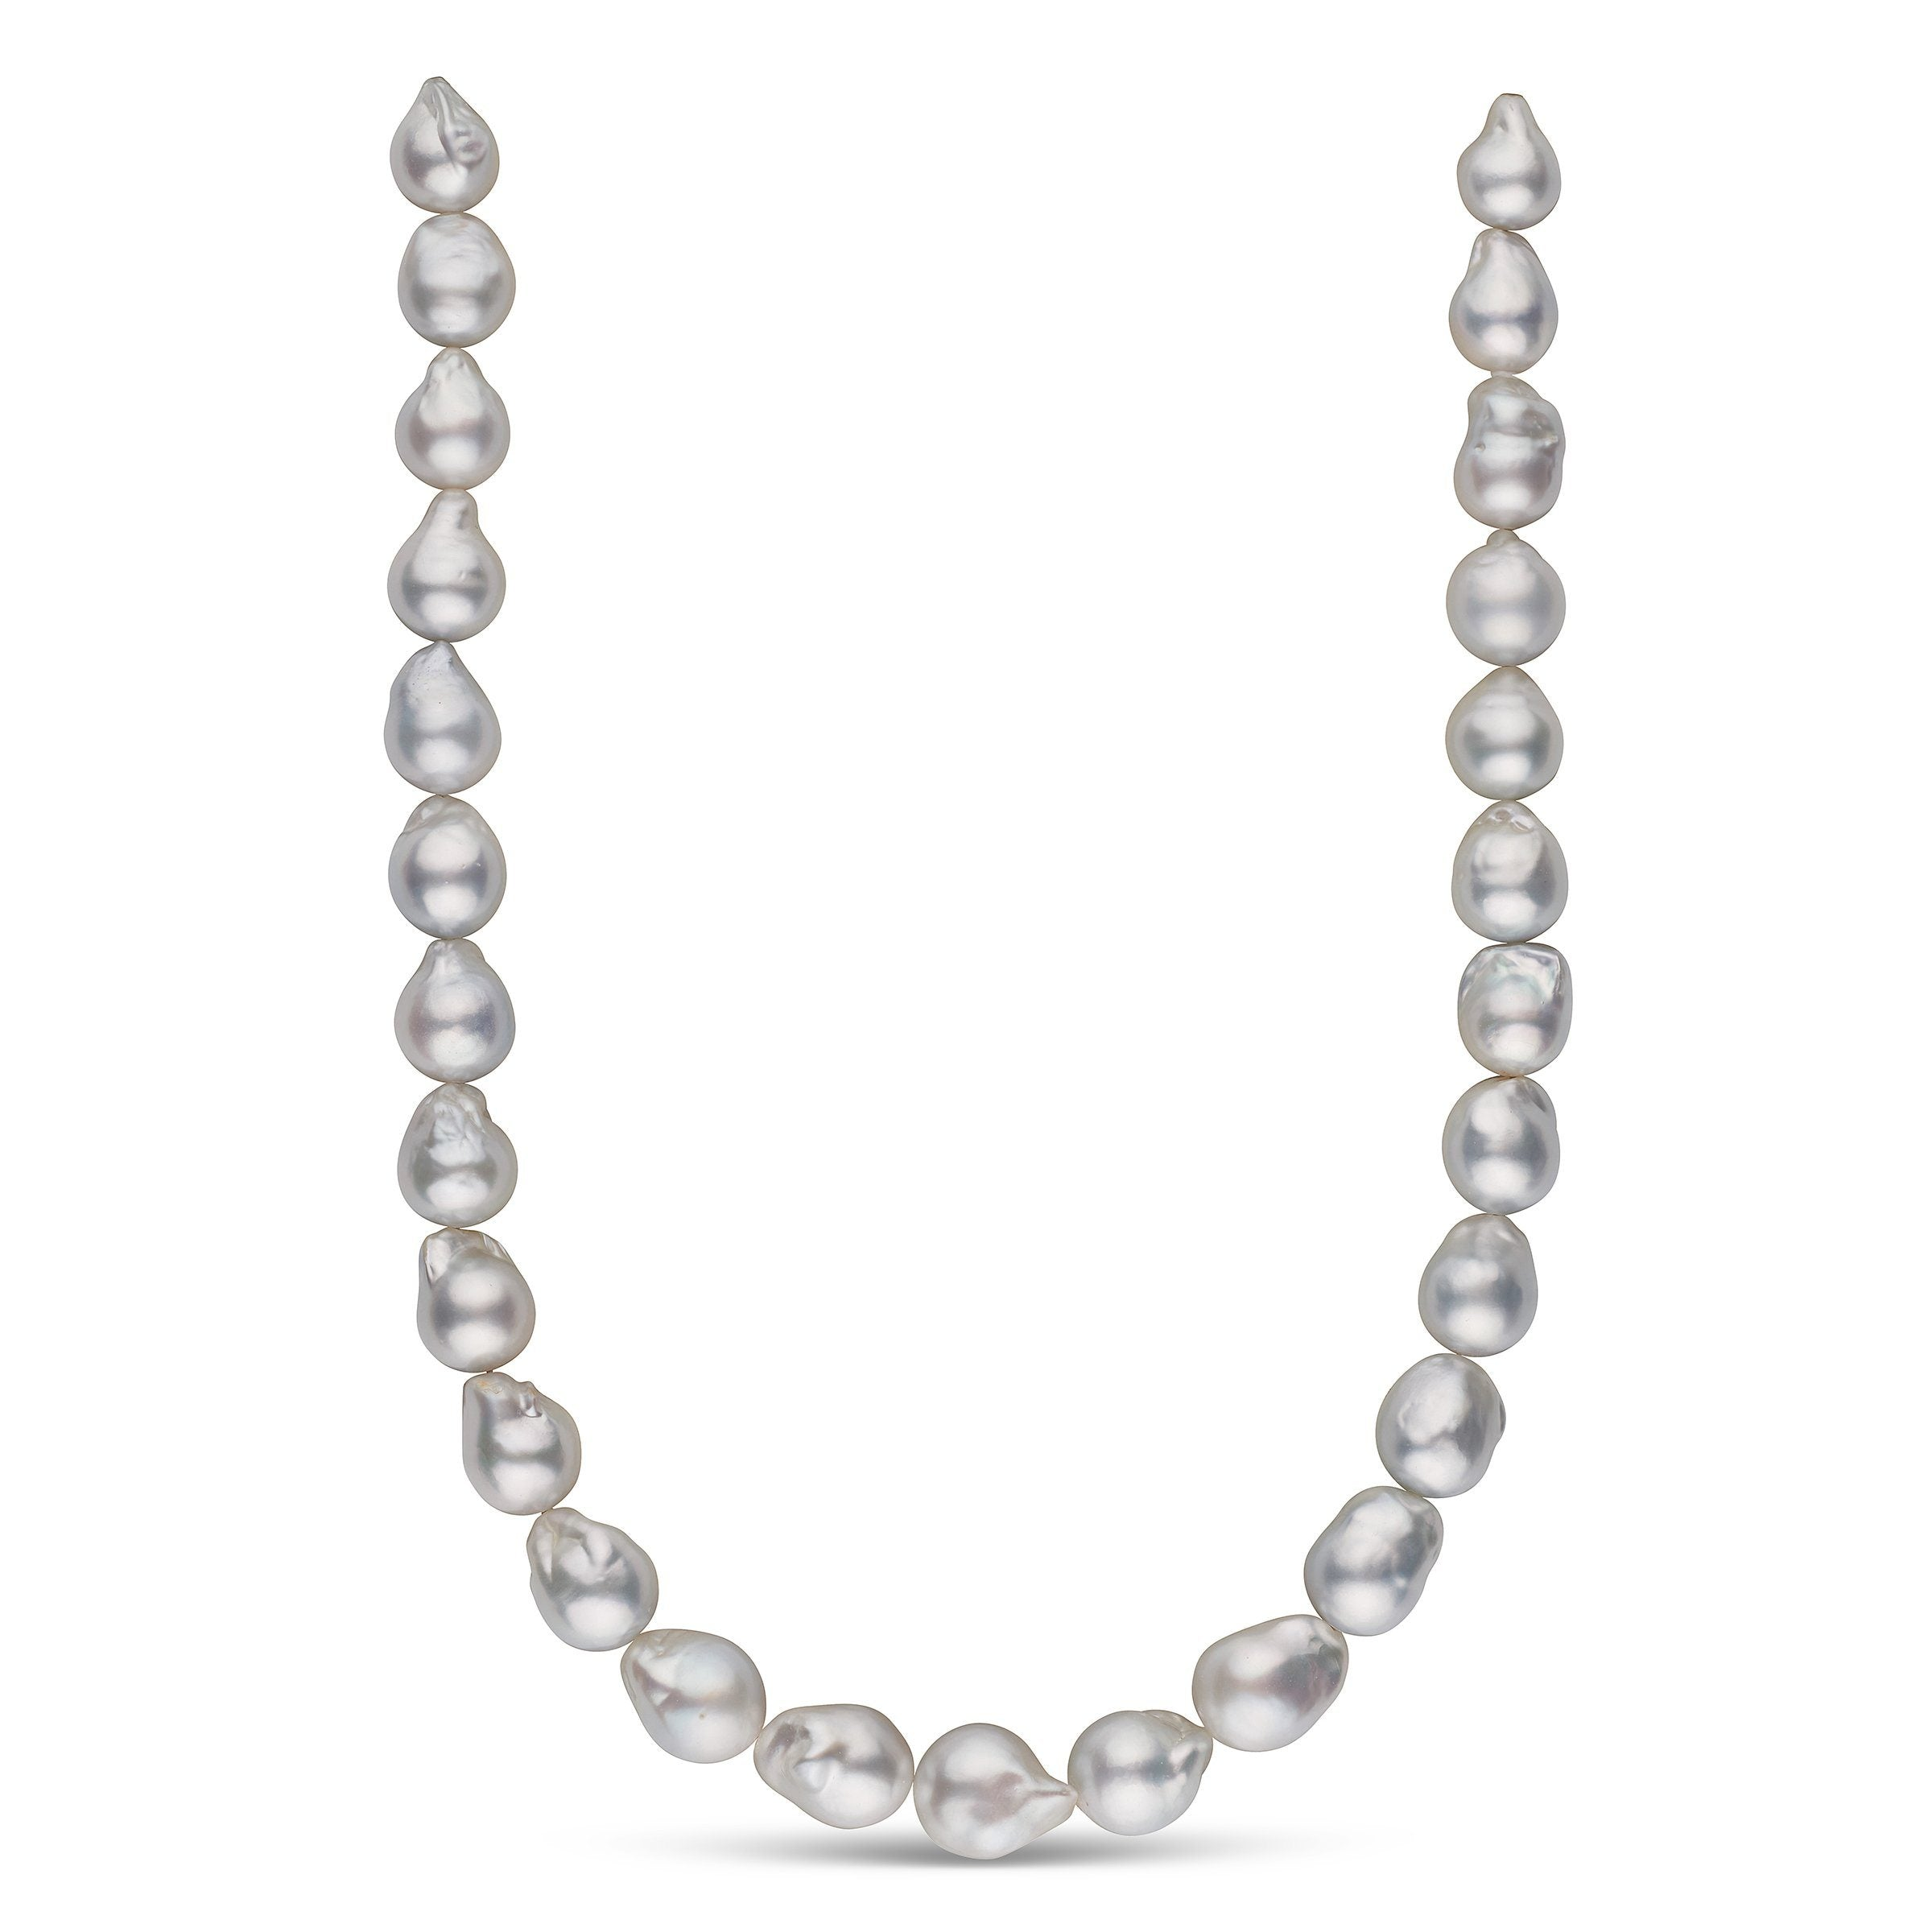 The Maestoso White South Sea Pearl Necklace